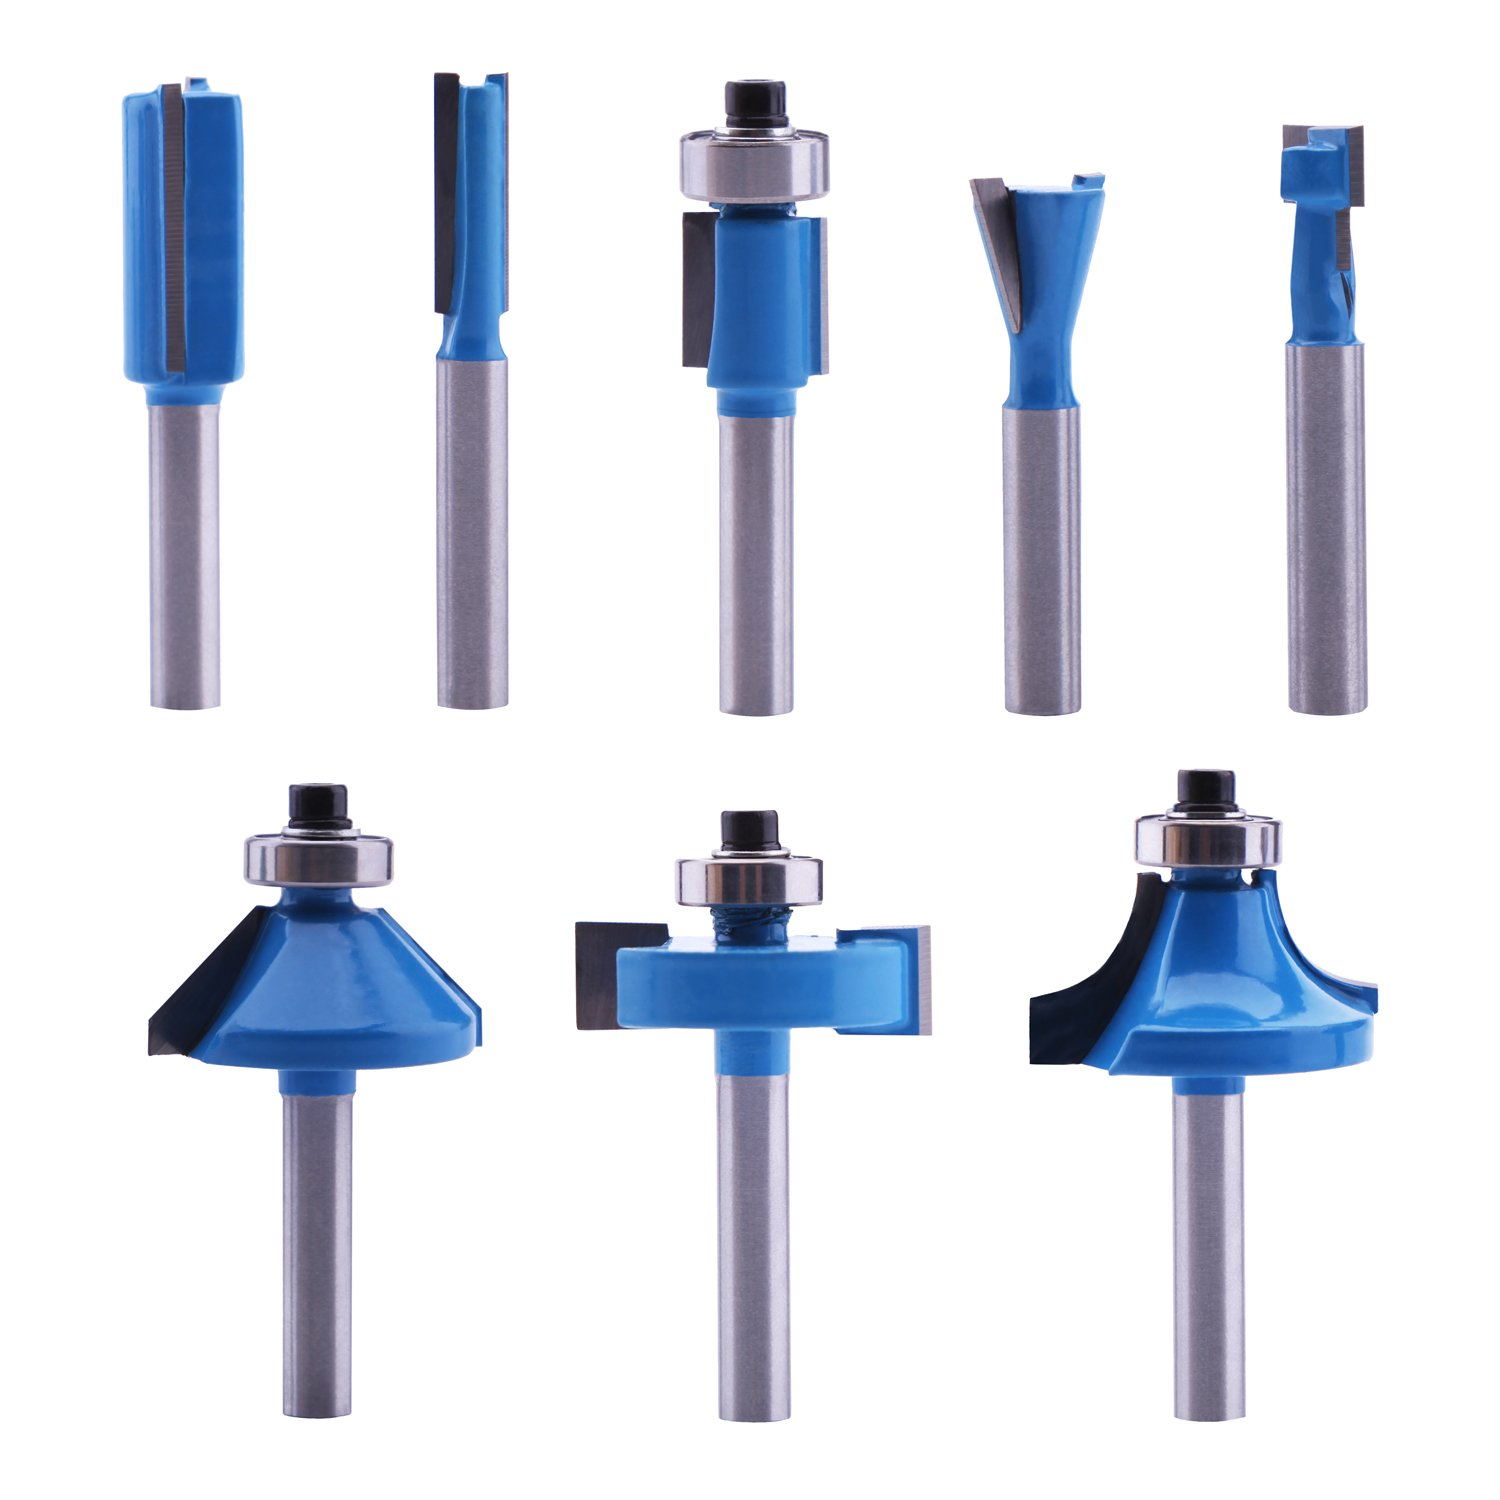 Carbide Tipped Router Bits (8 PCS) With 1/4'' Shank, Wood Milling Saw Cutter by LU&MN, All Purpose (For Woodwork, Cutting, Trimming Wood)